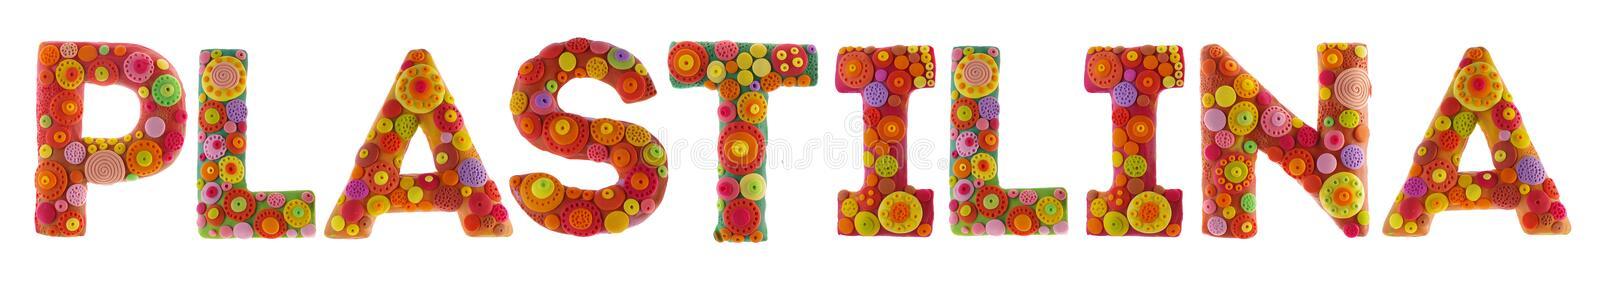 Plasticine words royalty free stock photos